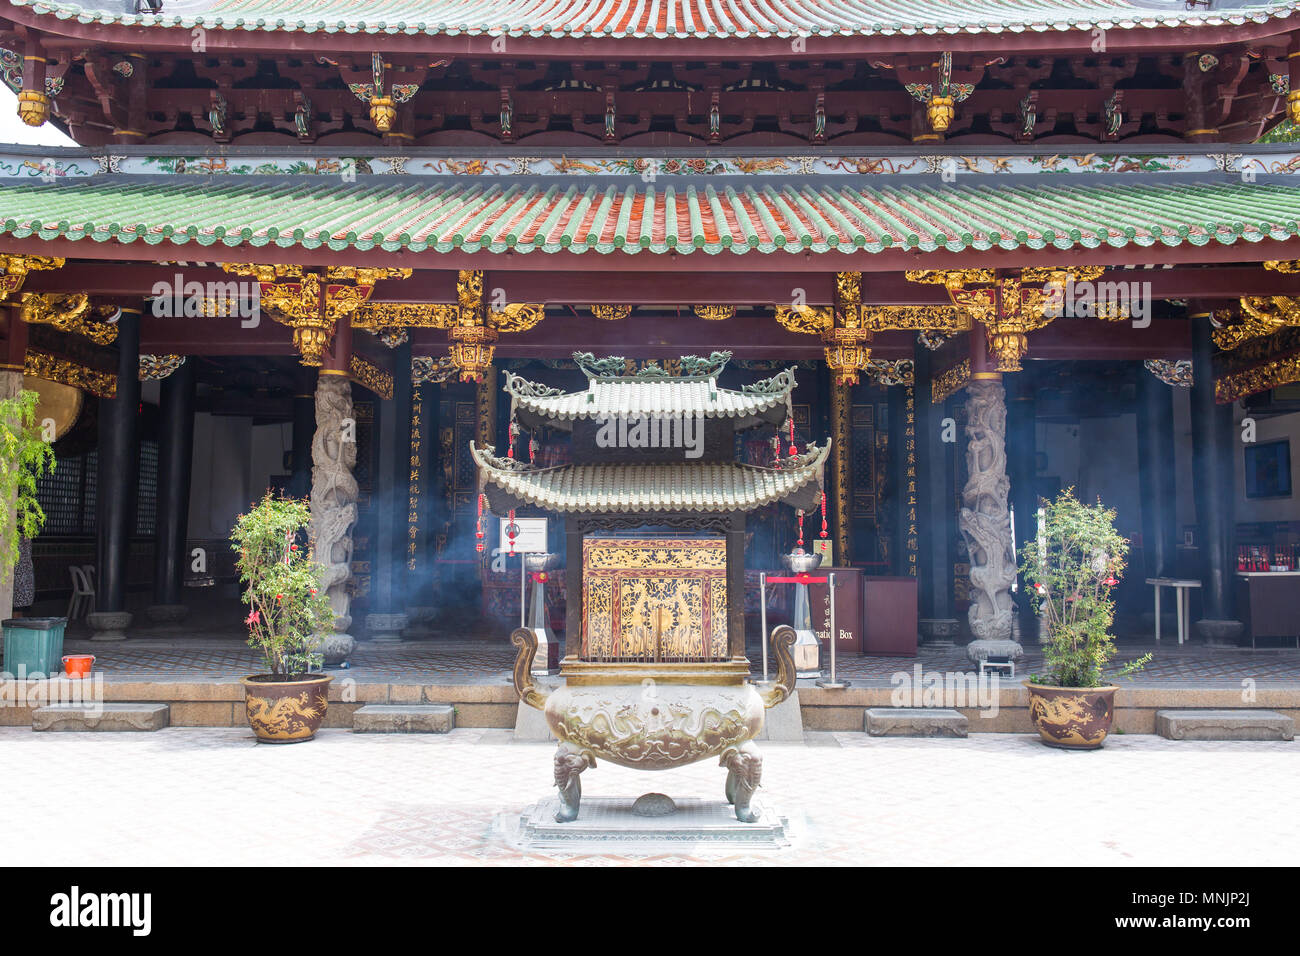 Close up front view of Thian Hock Keng Temple in Singapore, a widely popular sightseeing for tour groups. - Stock Image